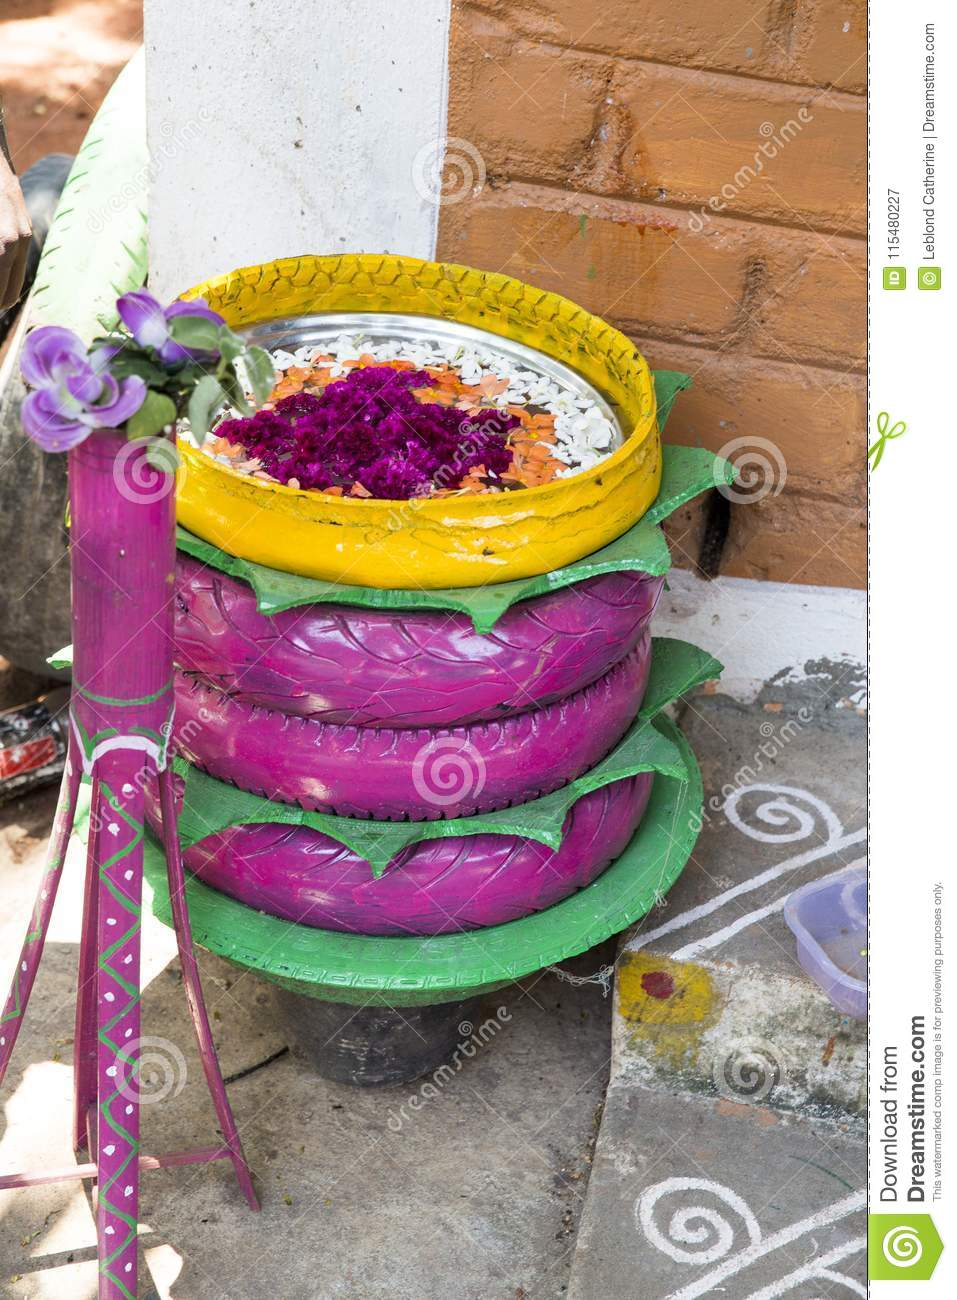 Unusual Flower Bed In The Garden. A Flower Bed Out Of Old Car Tires on tire art, tire landscaping, tire jewelry, tire fences, tire ponds, tire walls, tire water features, tire concrete, tire trees, spring designs, roof garden designs, tube garden designs, tire furniture,